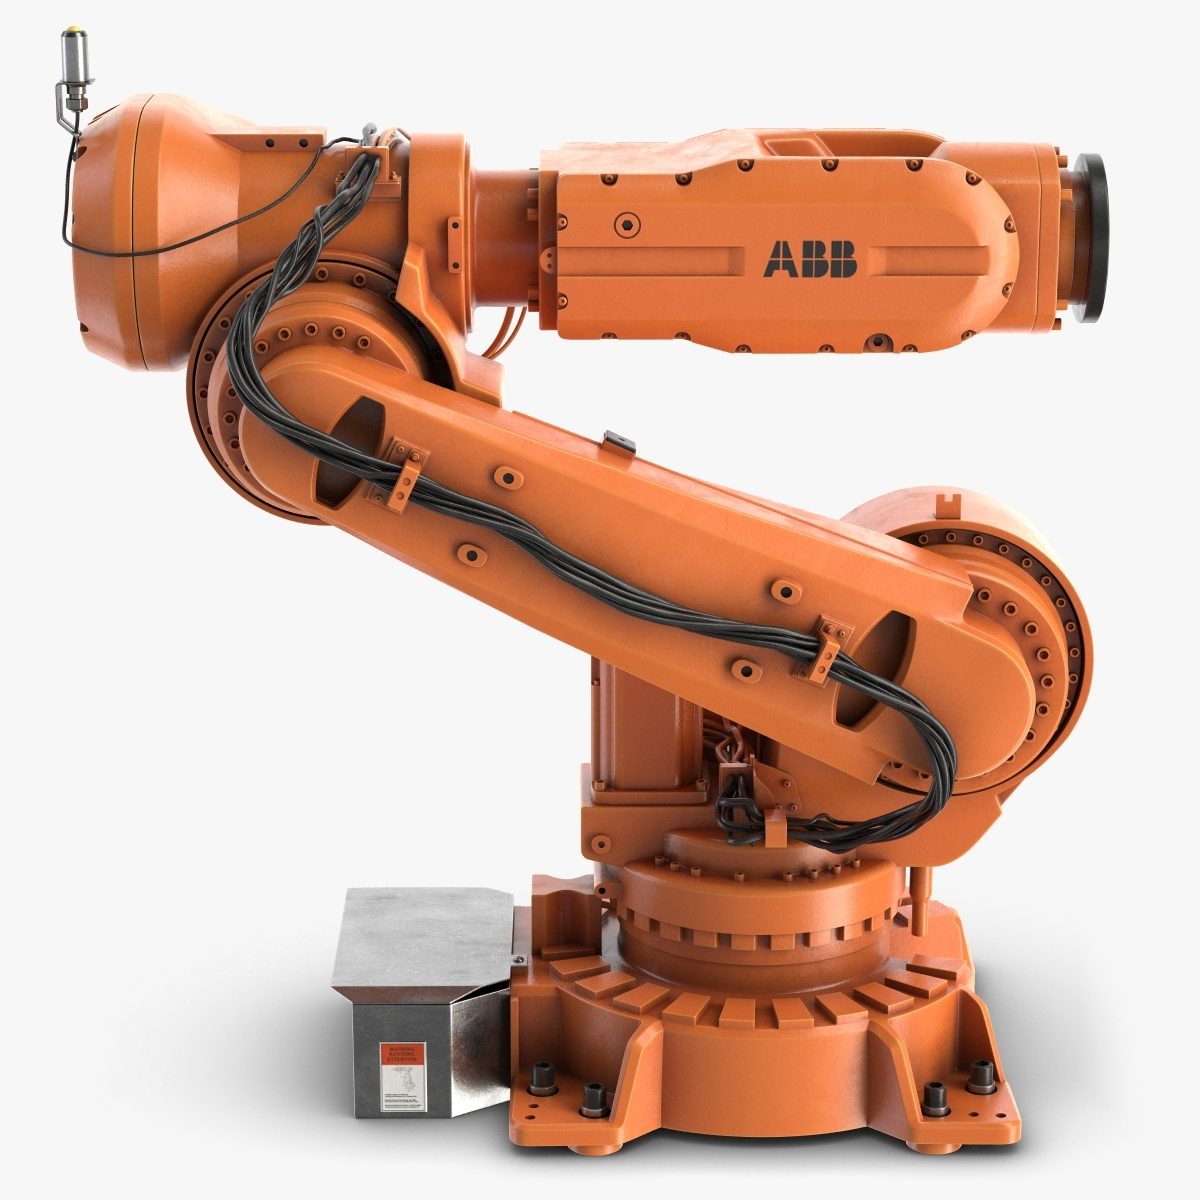 max industrial robot irb 6620